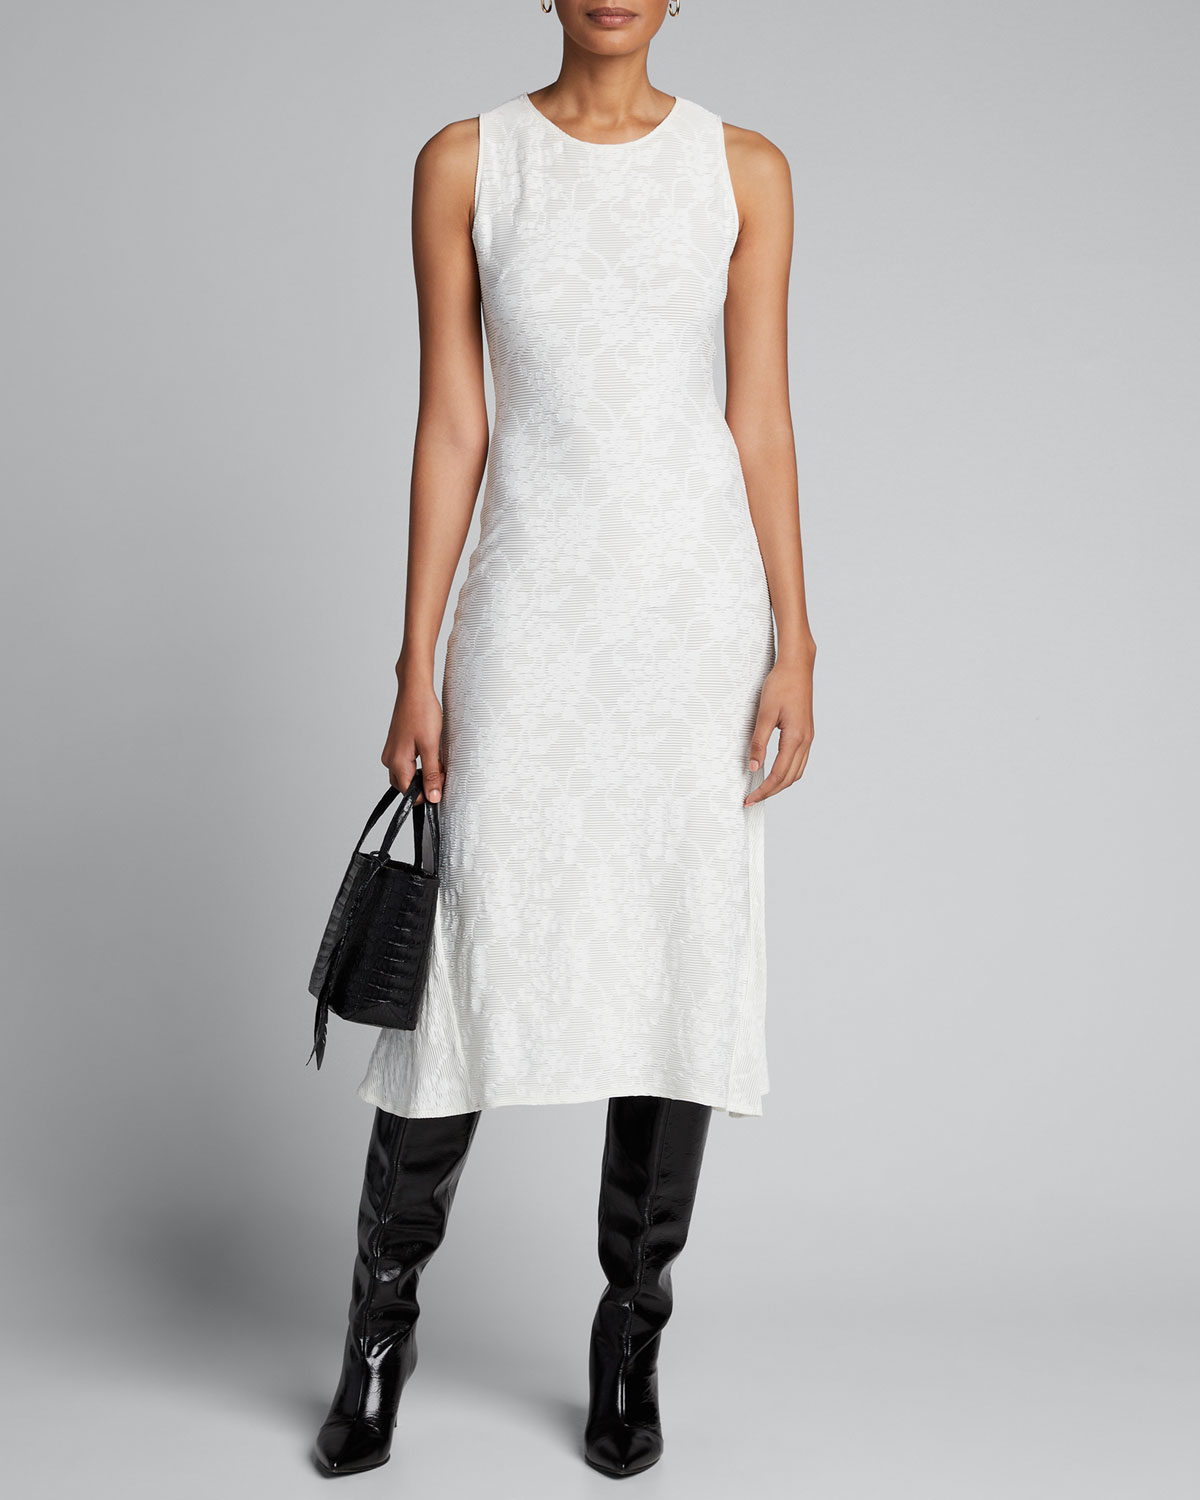 Fuzzi Dresses SLEEVELESS STRETCH LACE MIDI DRESS